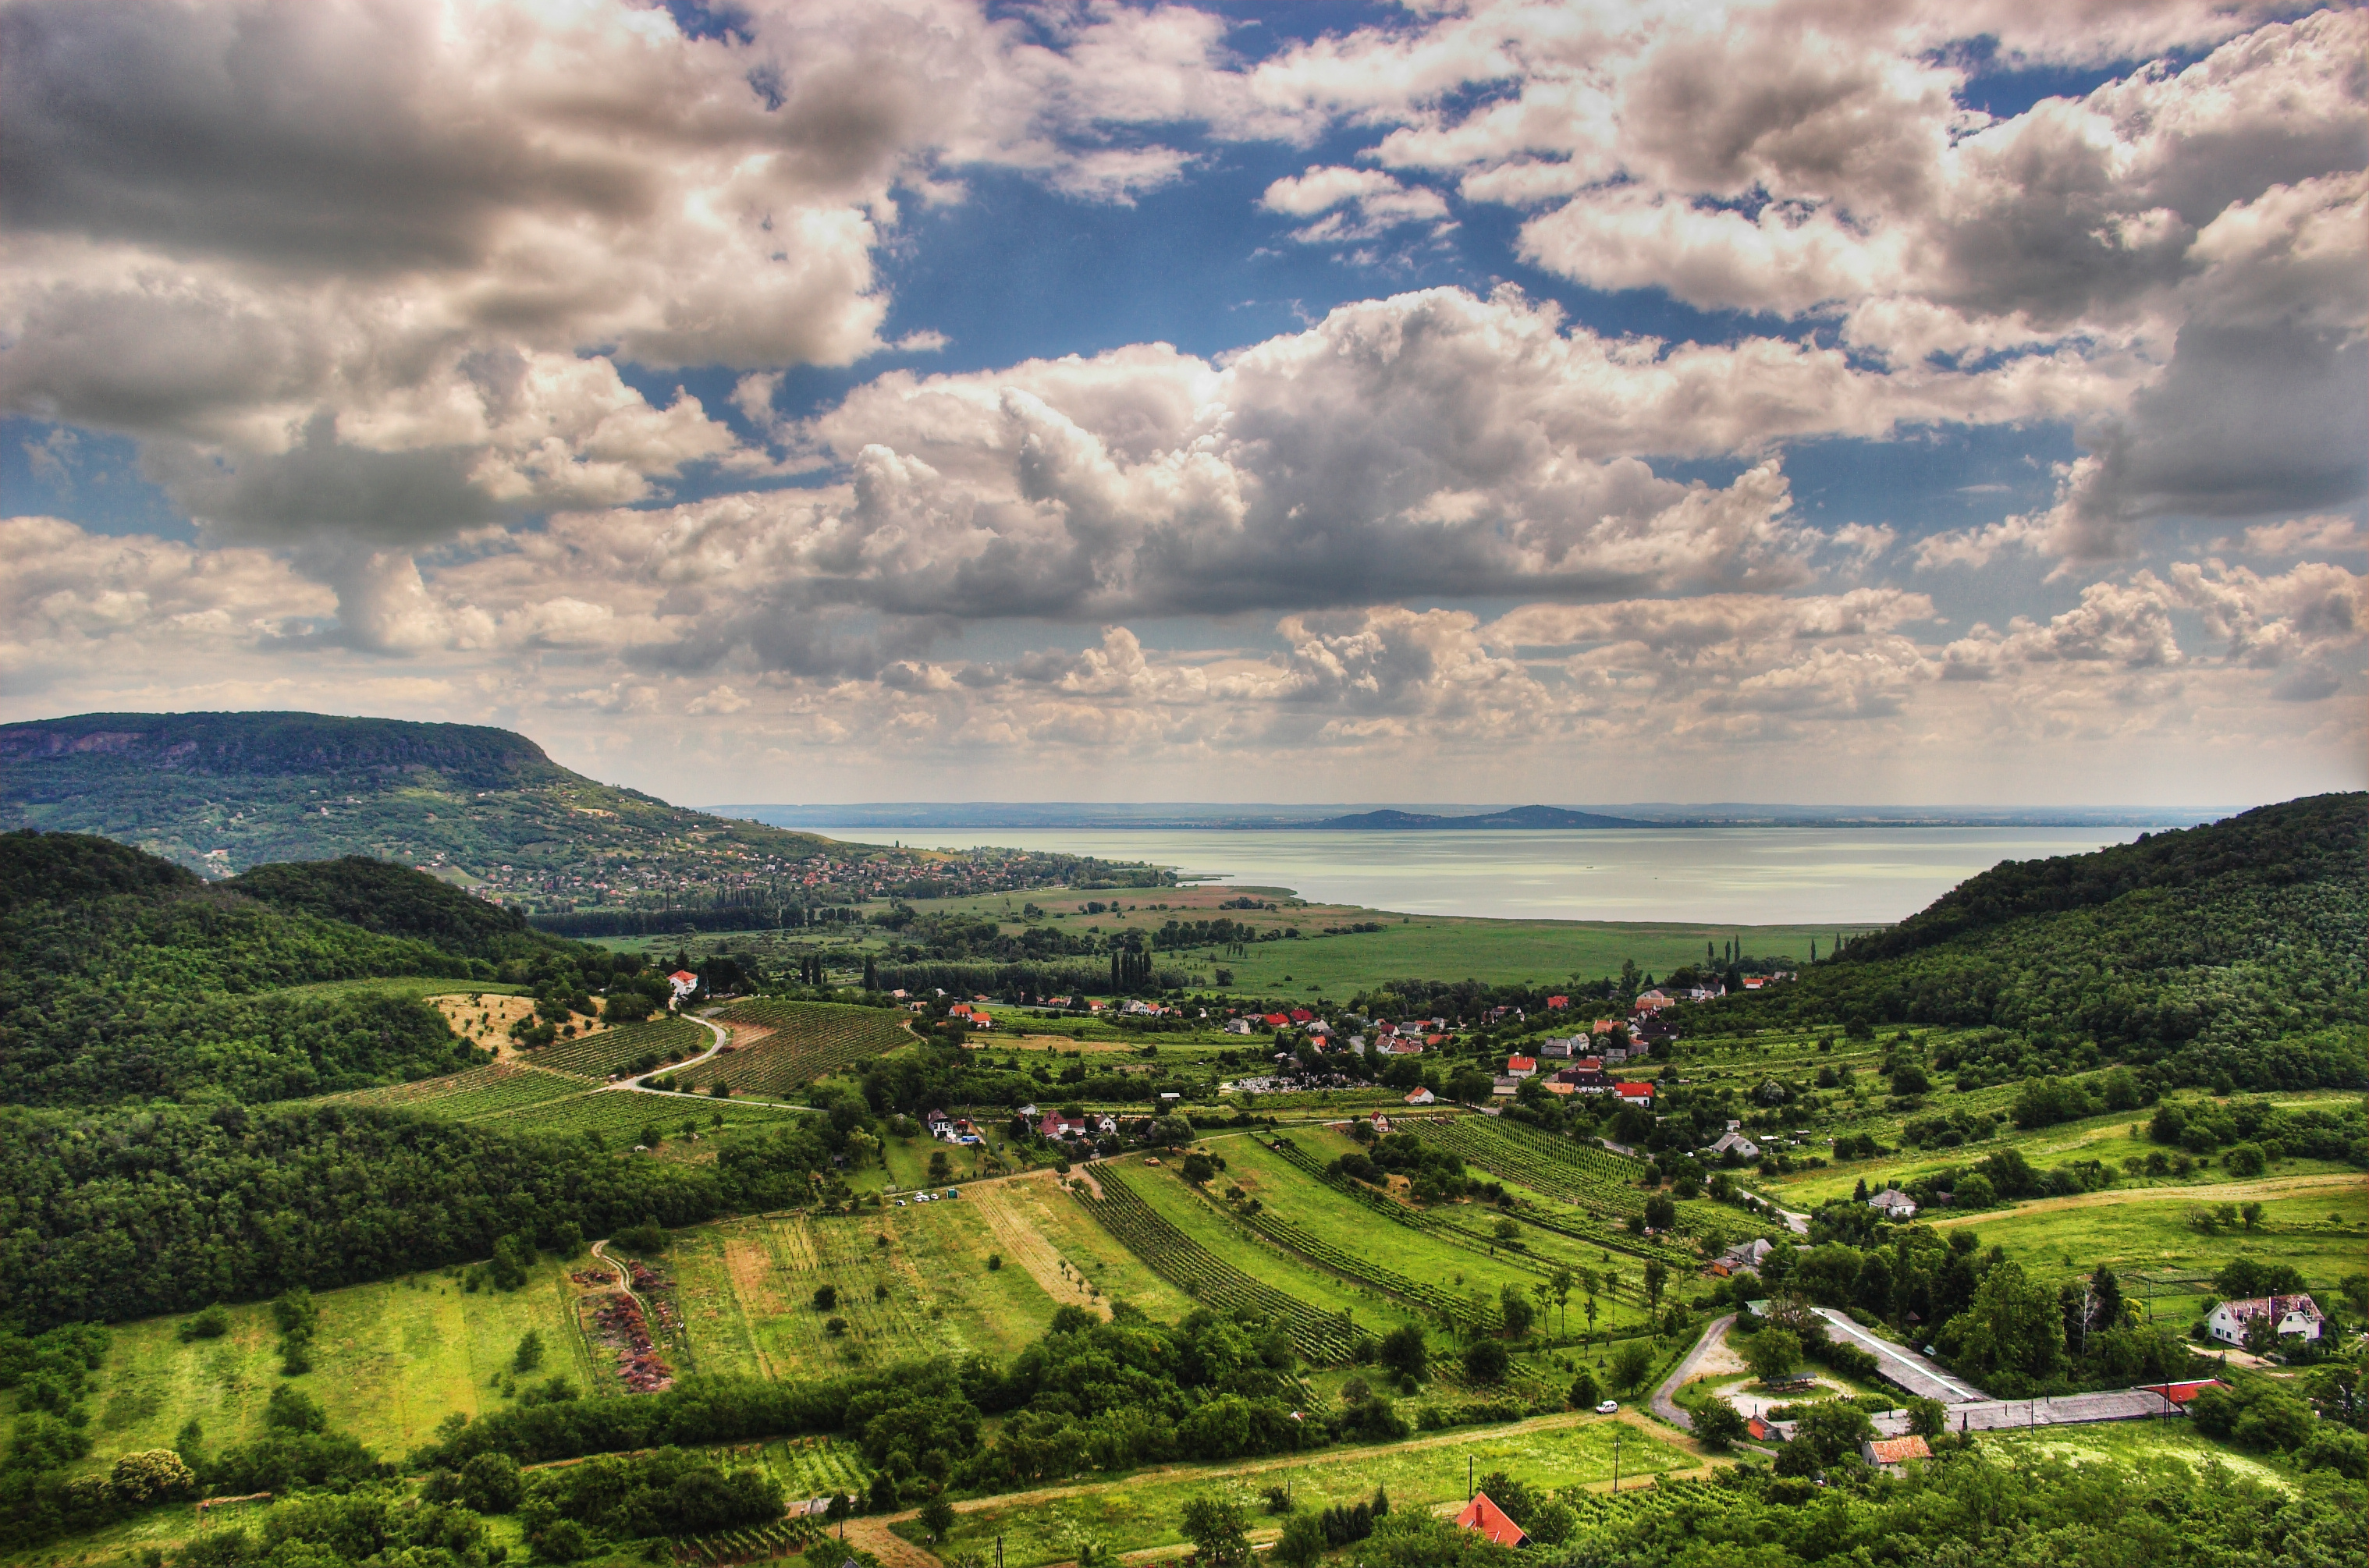 http://upload.wikimedia.org/wikipedia/commons/9/9e/Balaton_Hungary_Landscape.jpg